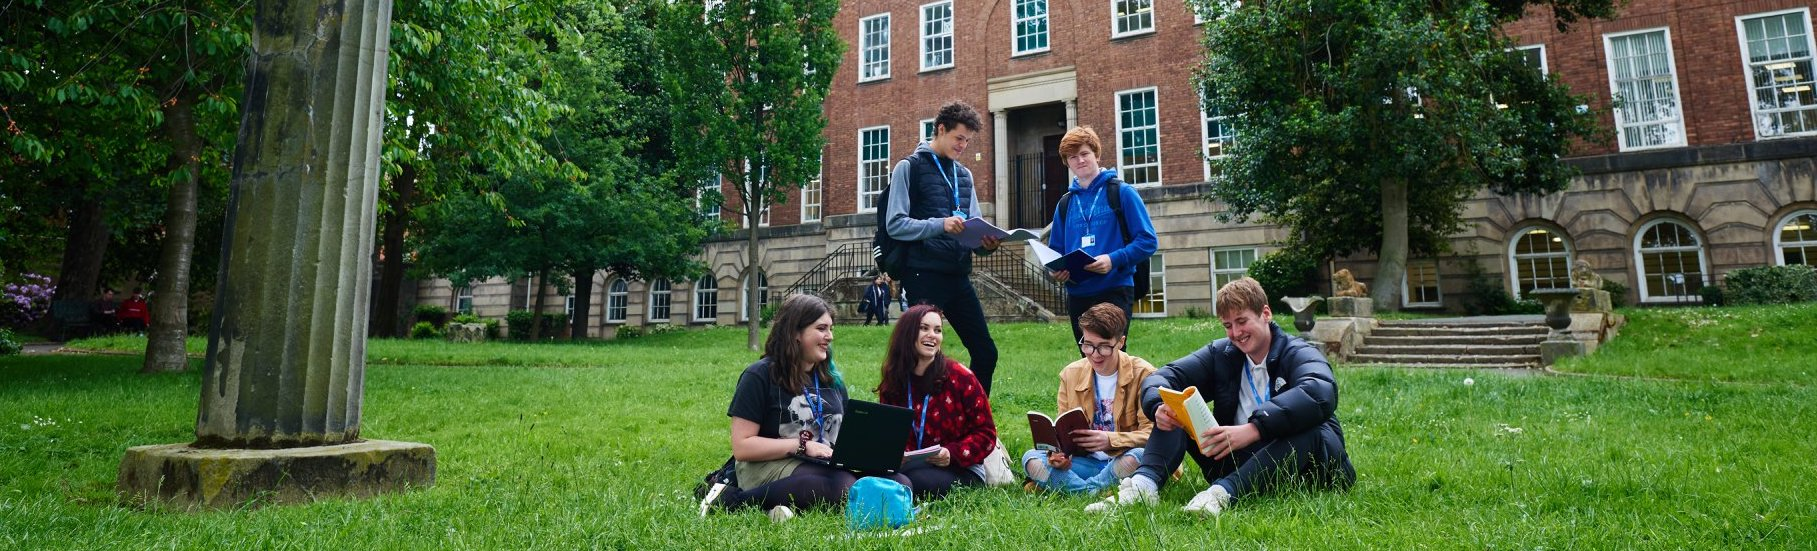 Students reading books on the college lawn